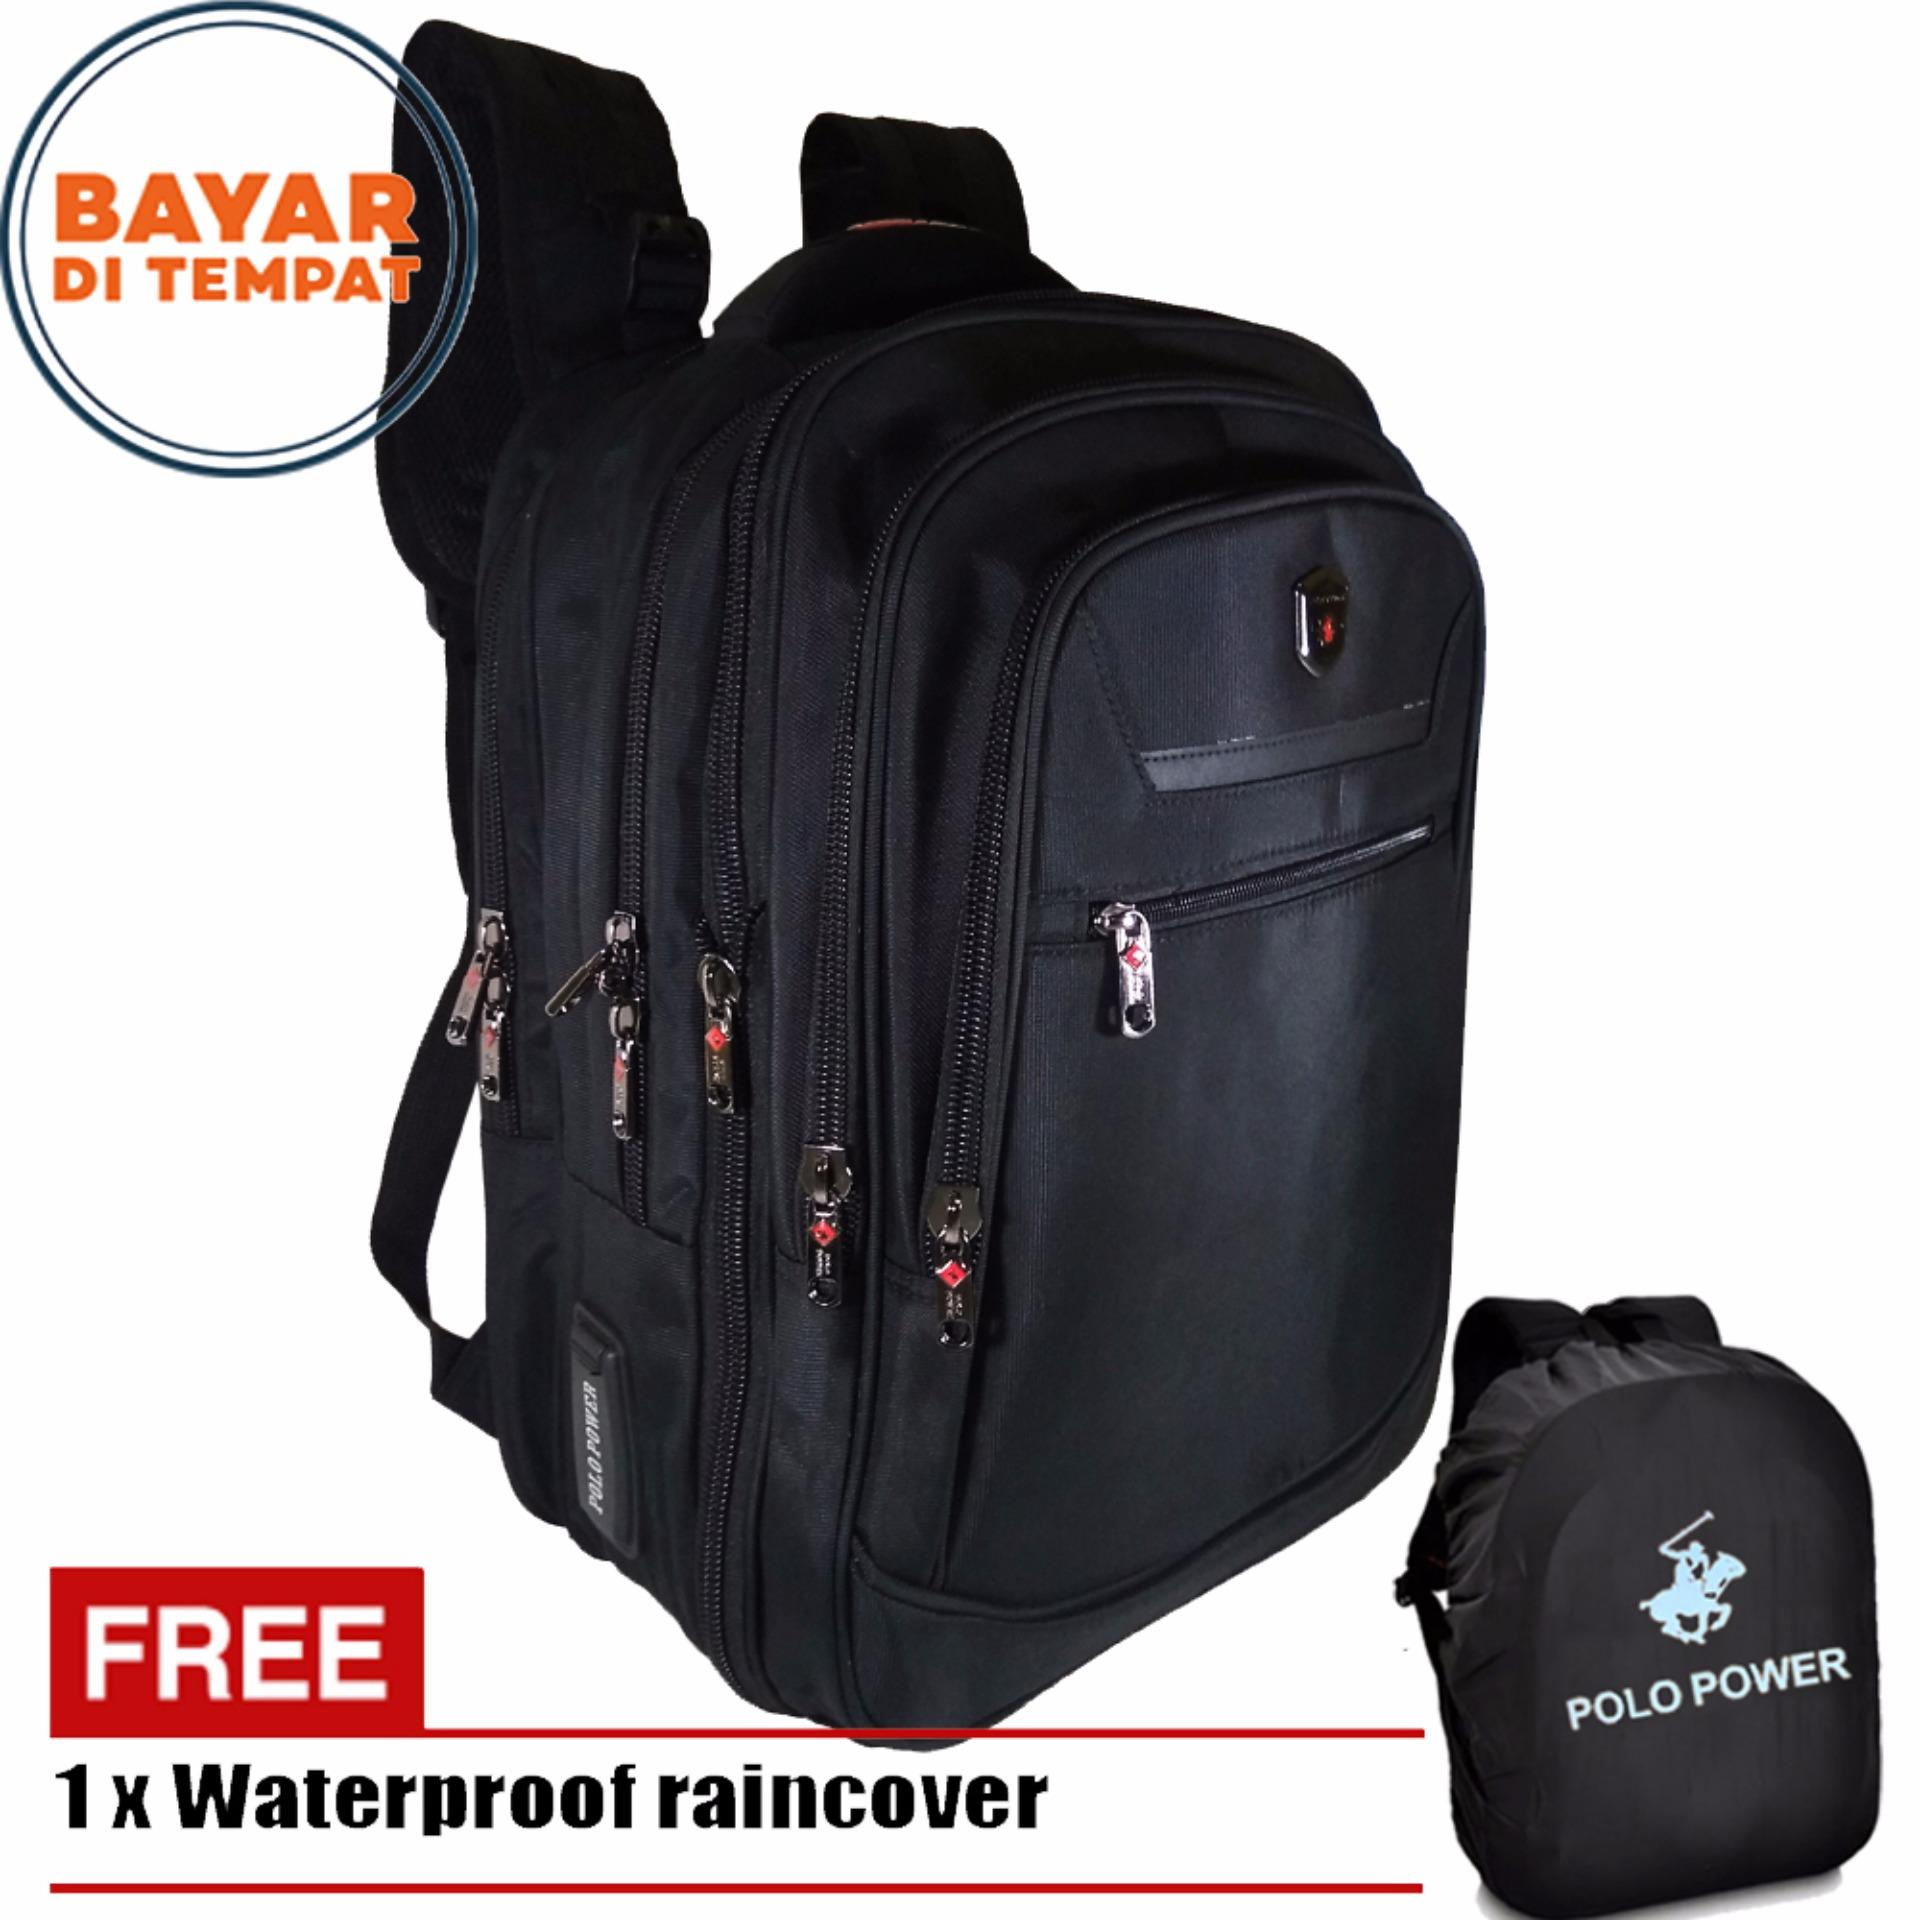 Harga Polo Power Tas Ransel Pria 18 Inchi Expandable 185003 Highest Spec Polo Backpack Import Original Black Raincover Polo Power Ori